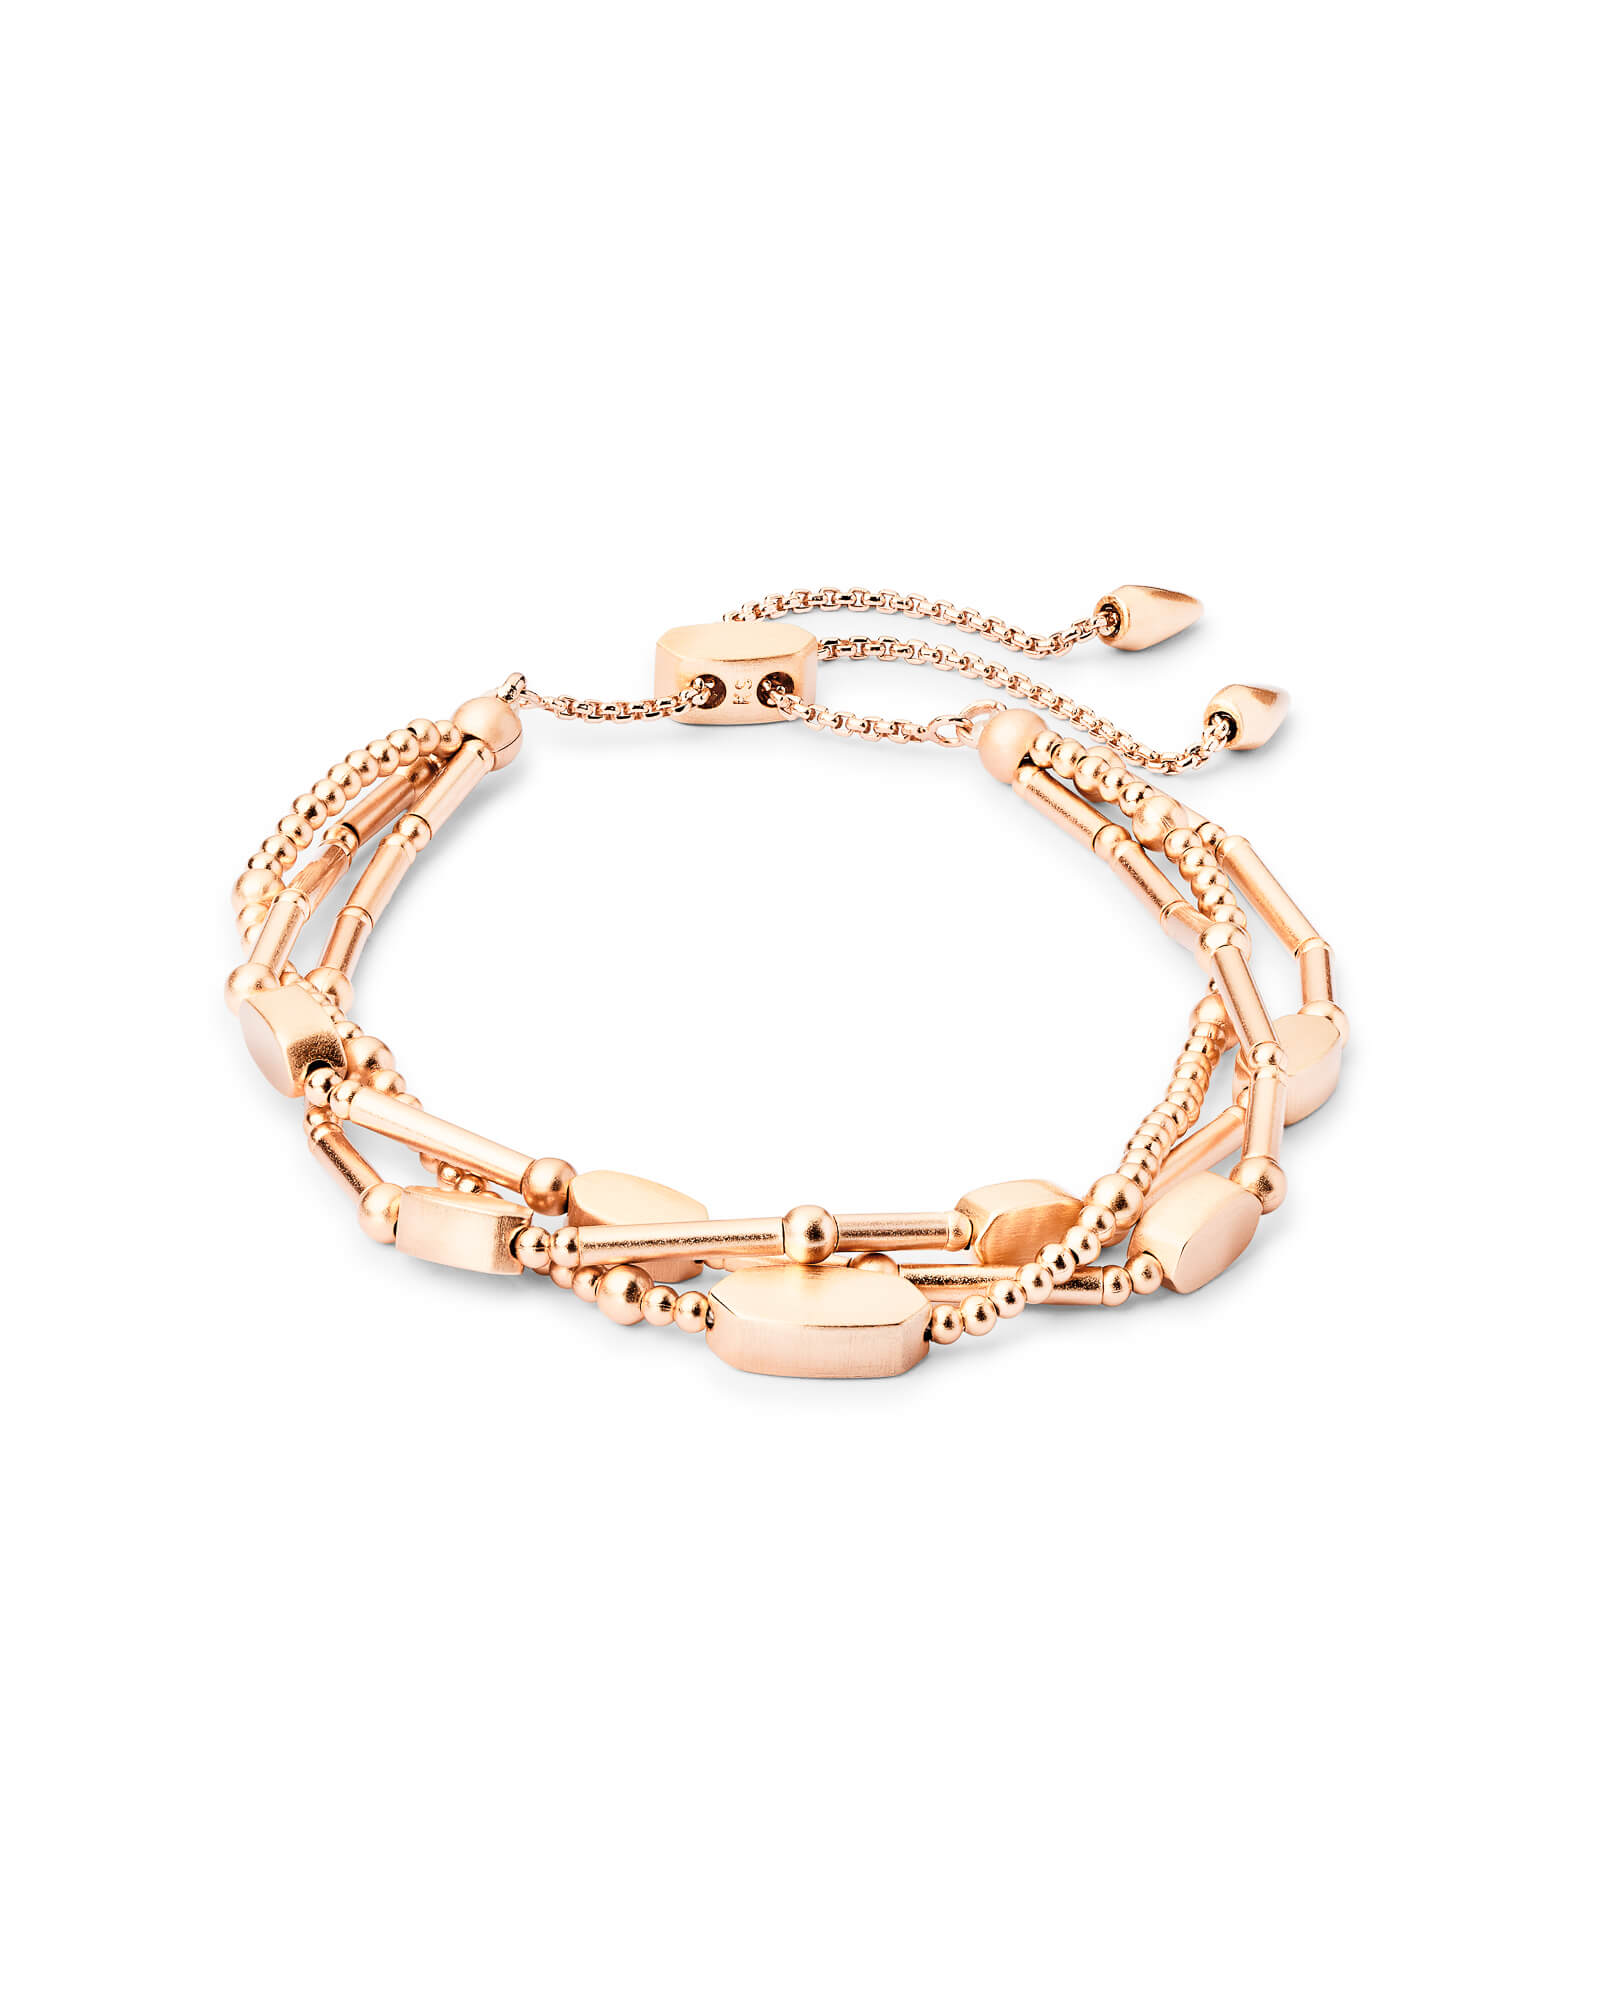 Chantal Beaded Bracelet in Rose Gold